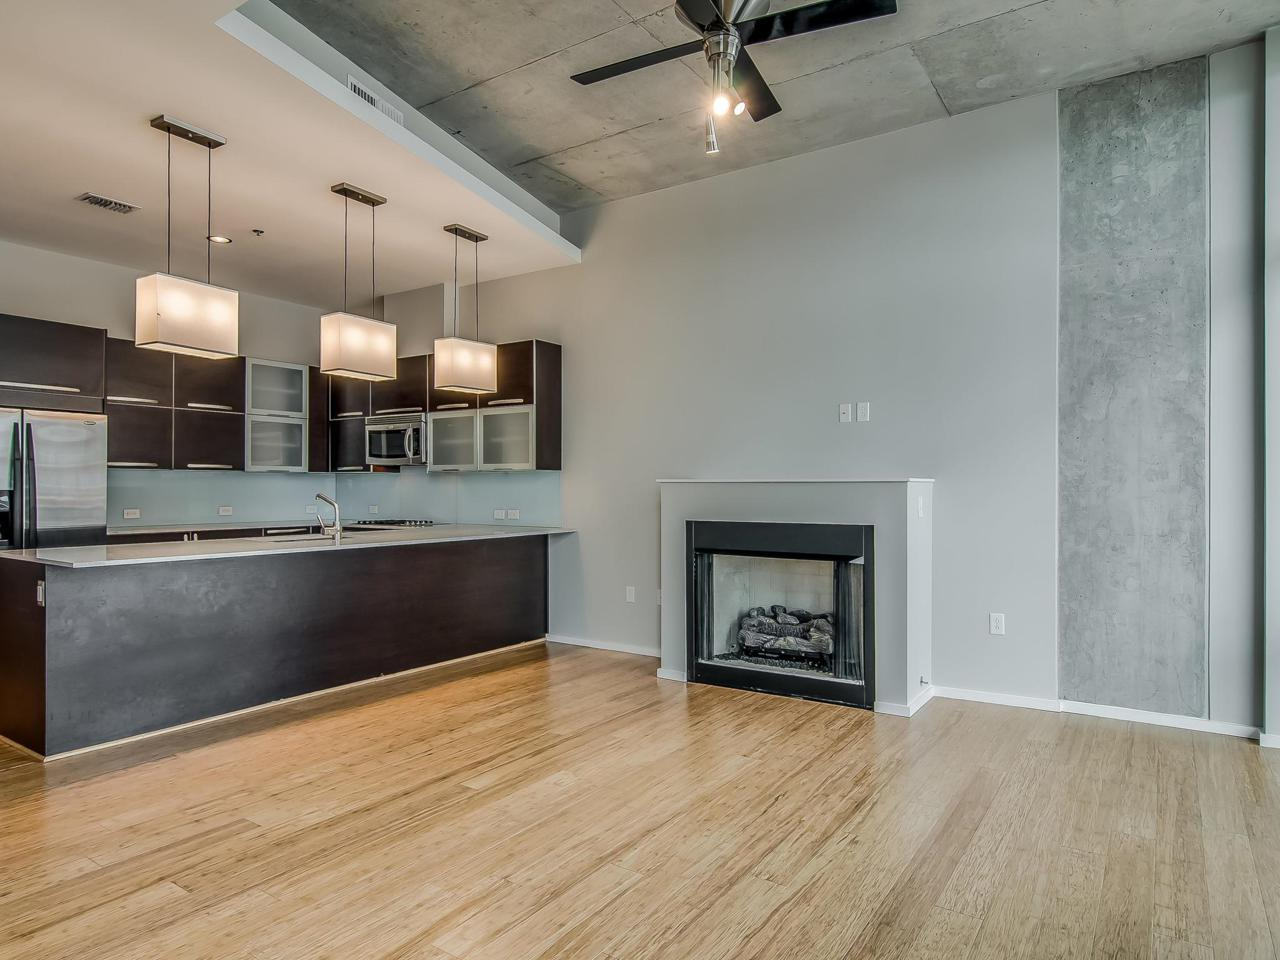 700 12Th Ave S #703 - Photo 1